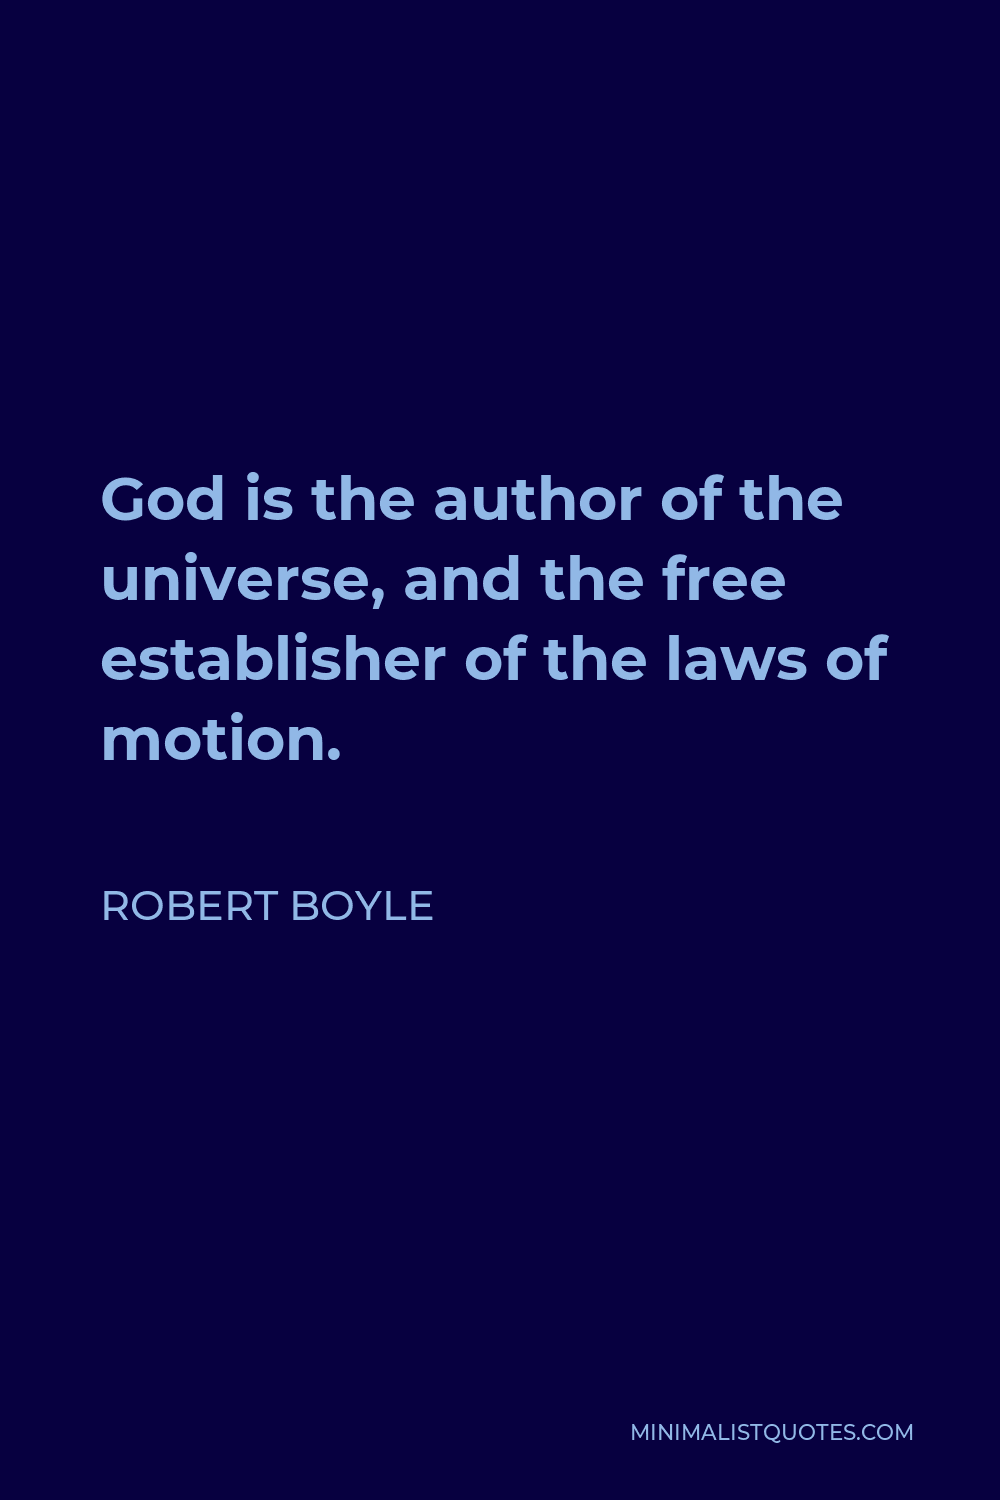 Robert Boyle Quote - God is the author of the universe, and the free establisher of the laws of motion.